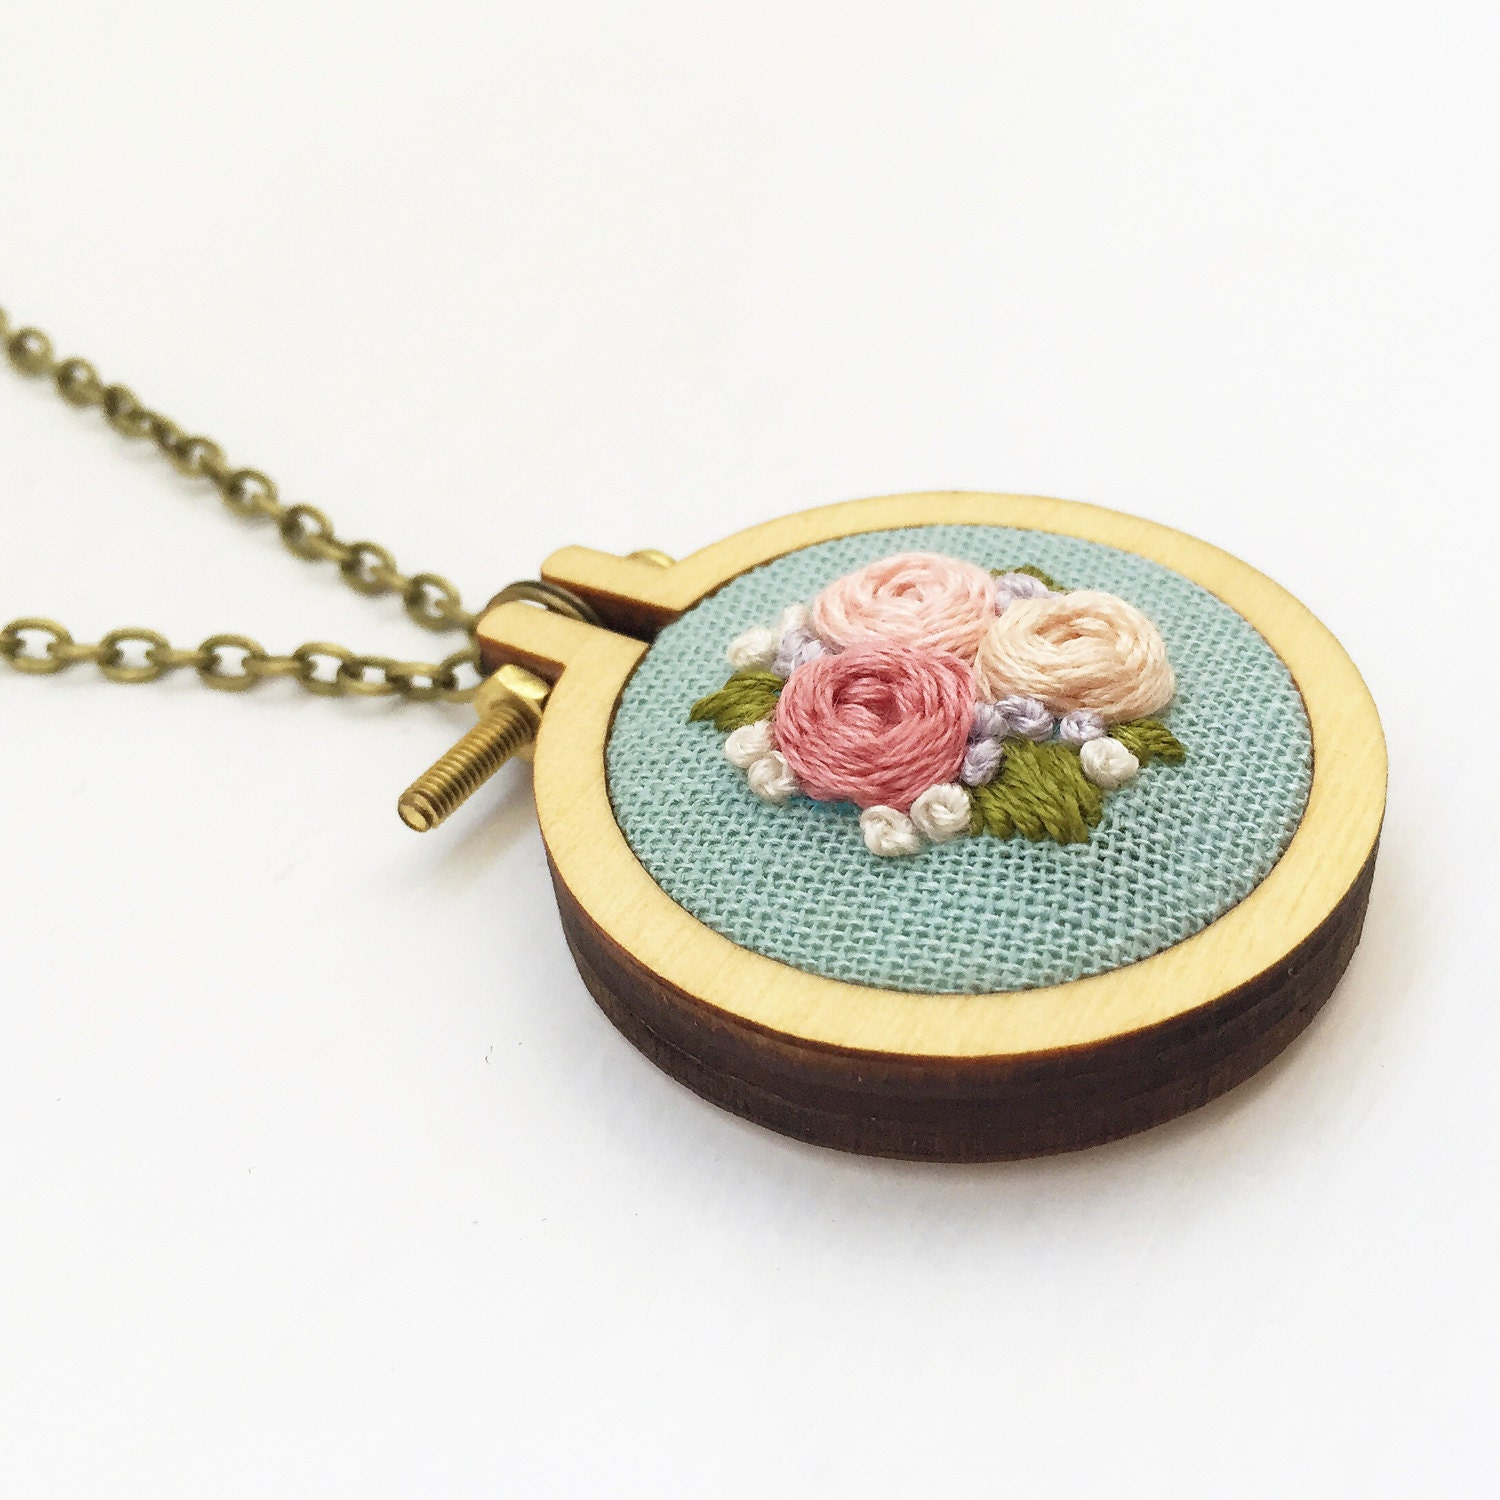 Embroidered floral mini hoop necklace handstitched